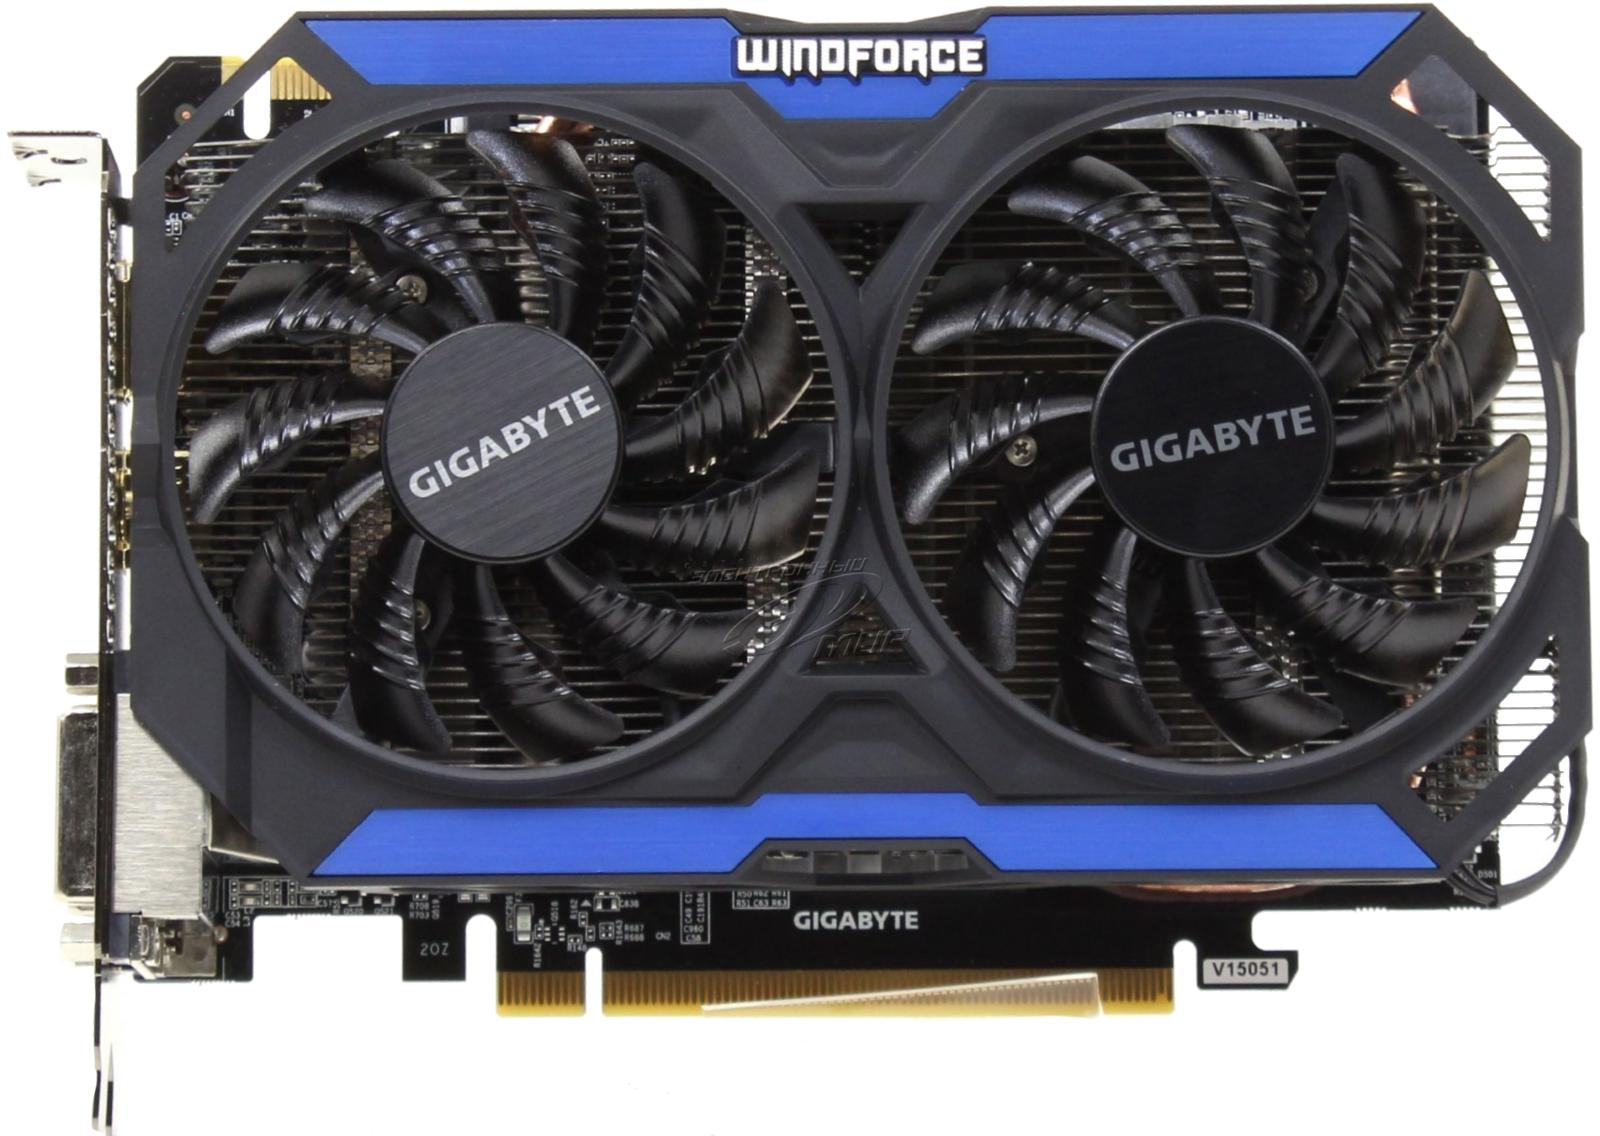 Gigabyte GeForce GTX 960 OC